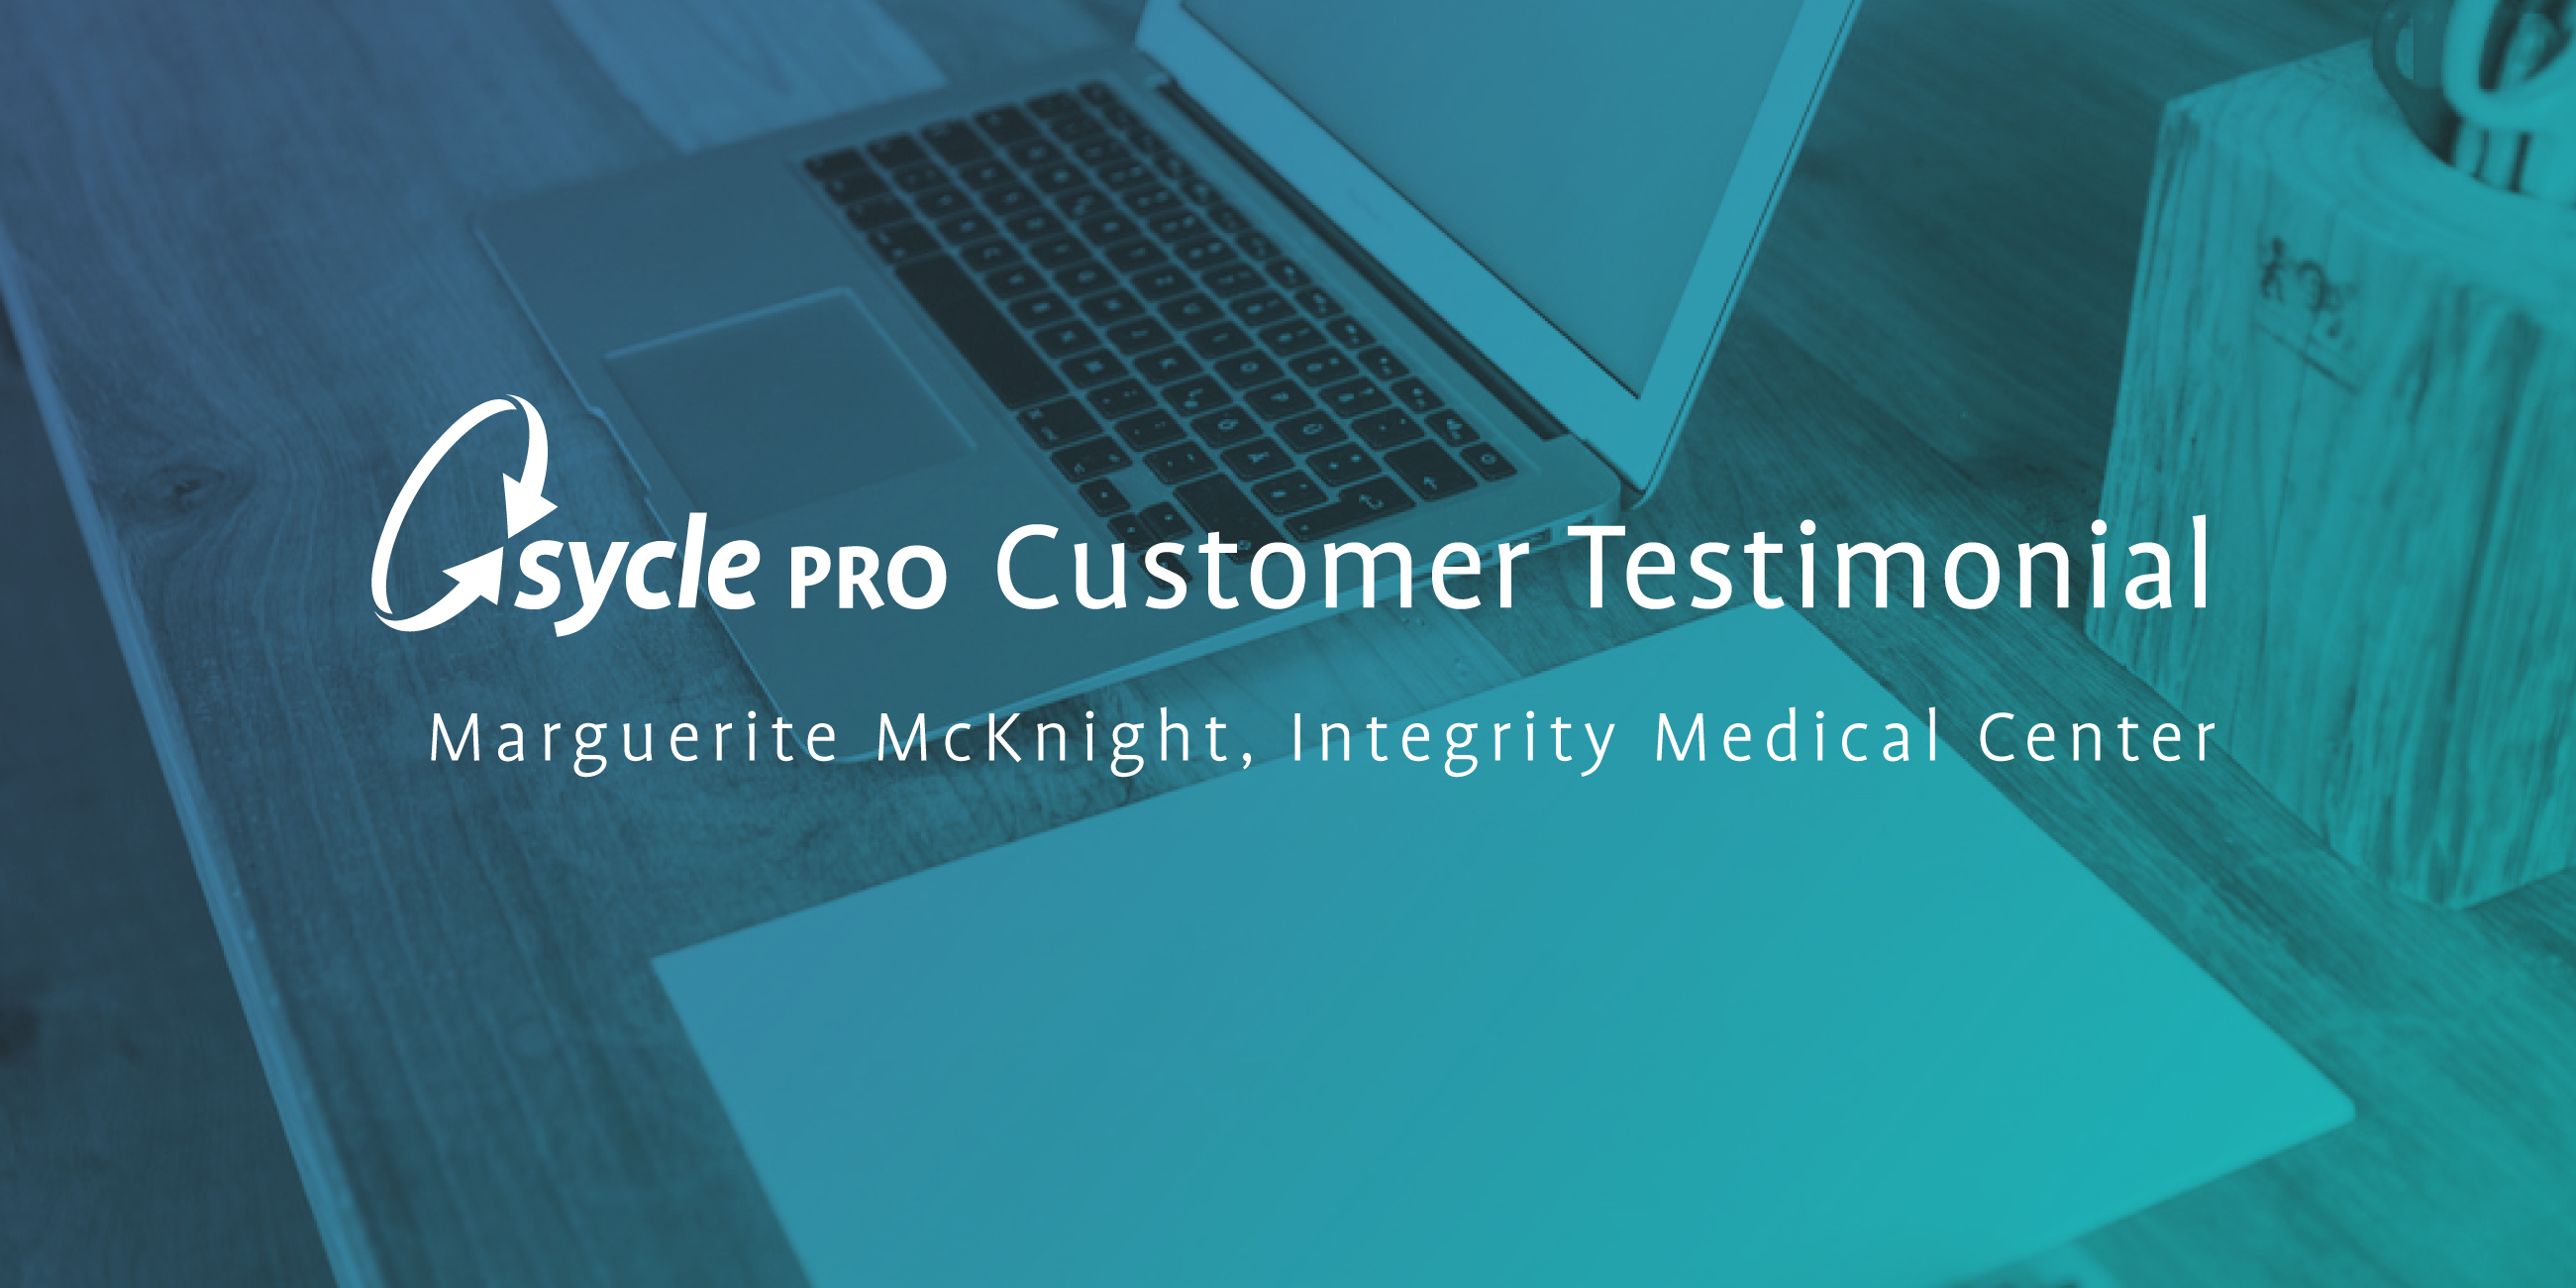 Sycle PRO: A Customer Testimonial image